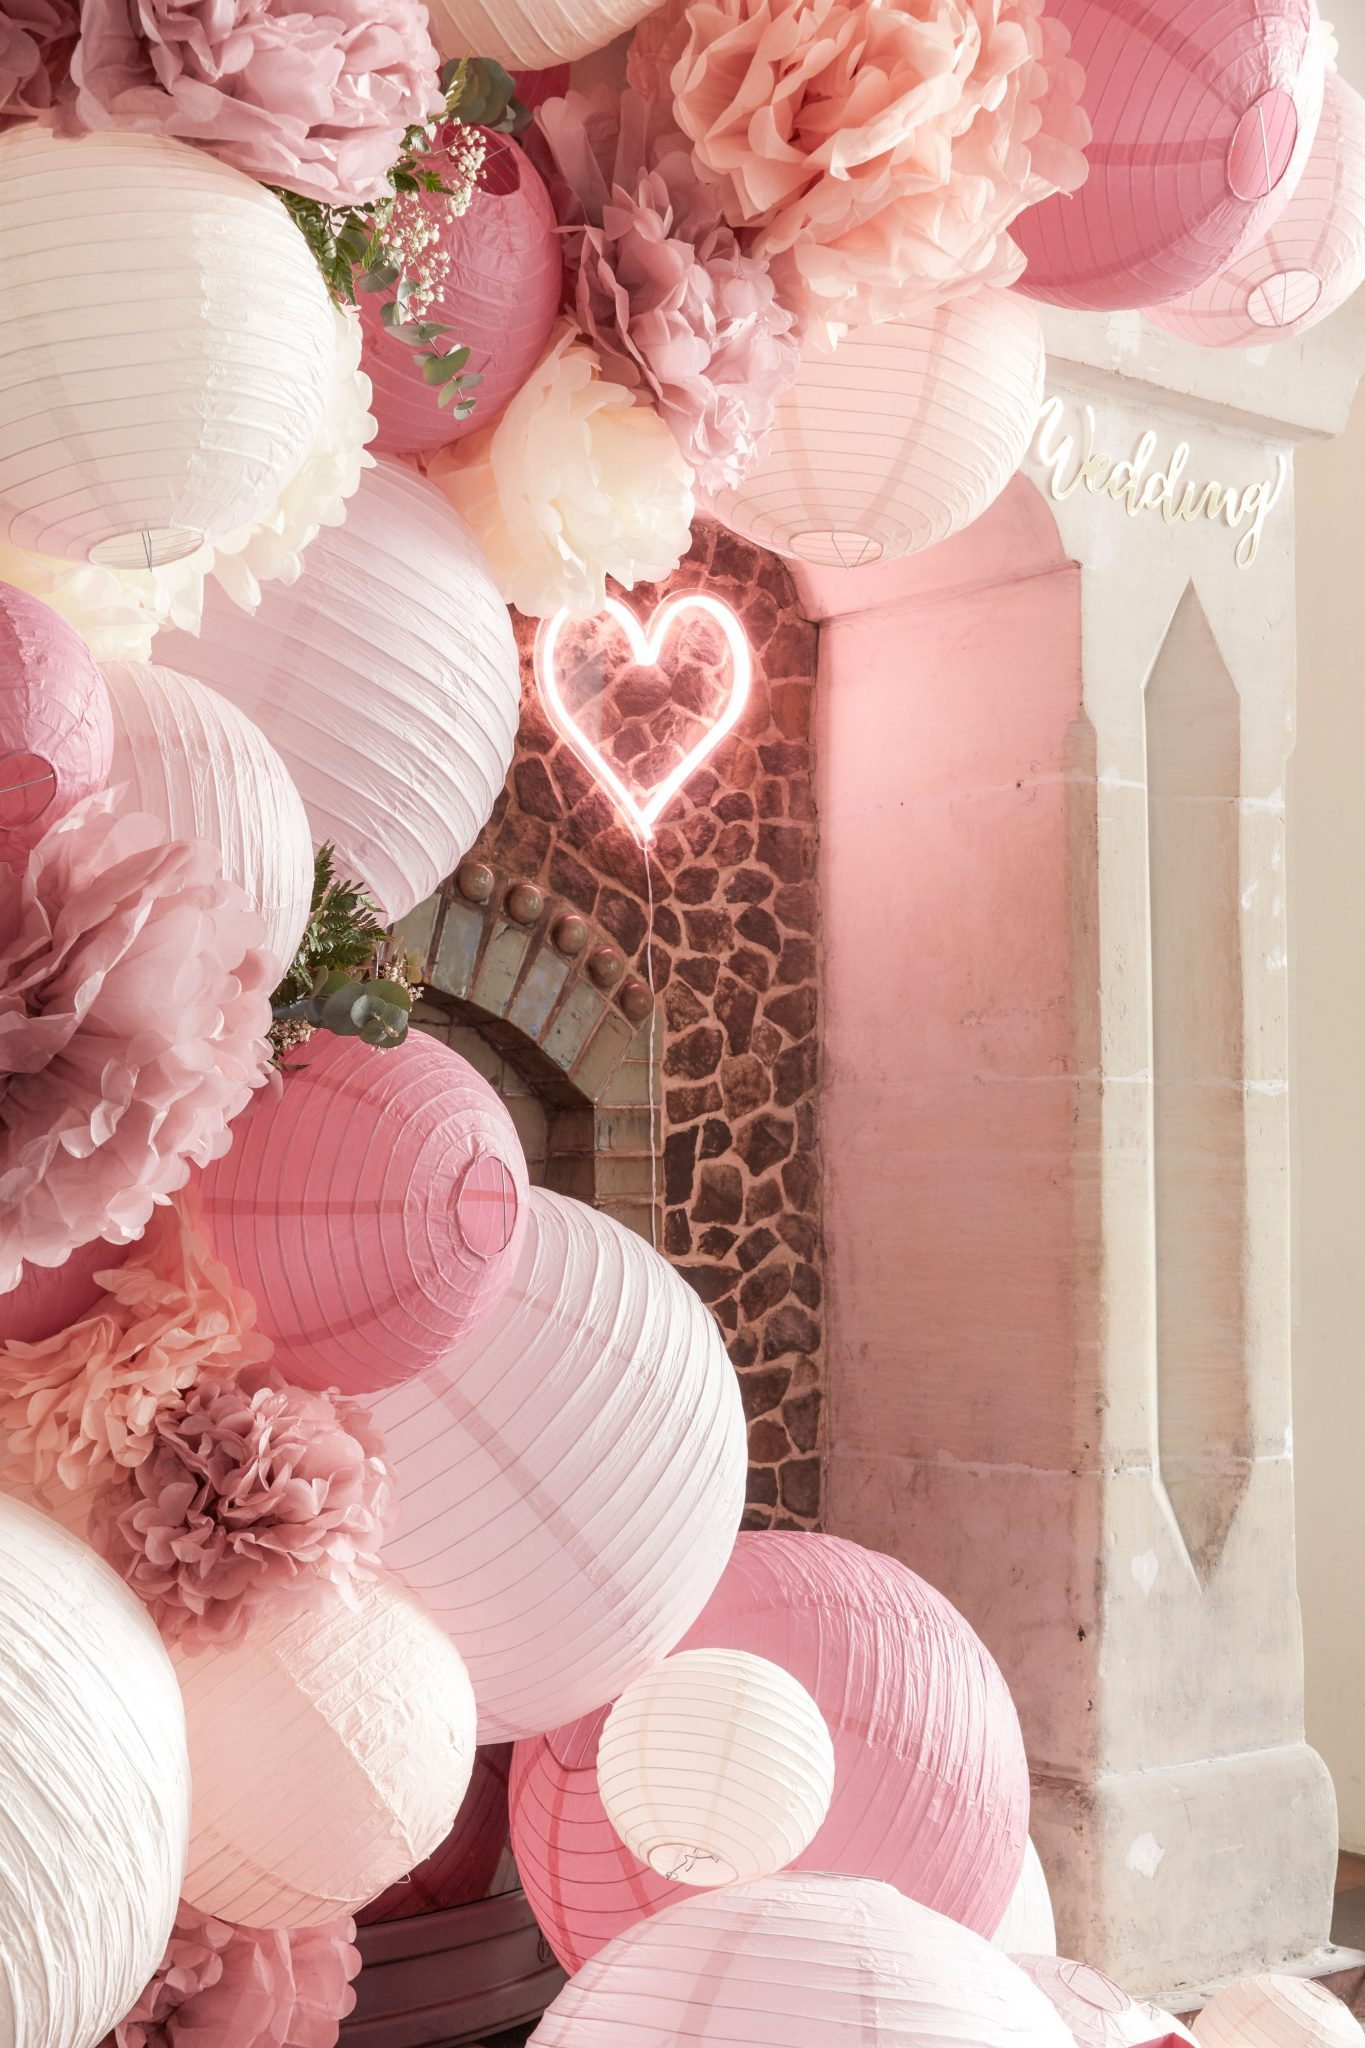 deco mariage grappe cascade lampions comment tuto cheminee rose